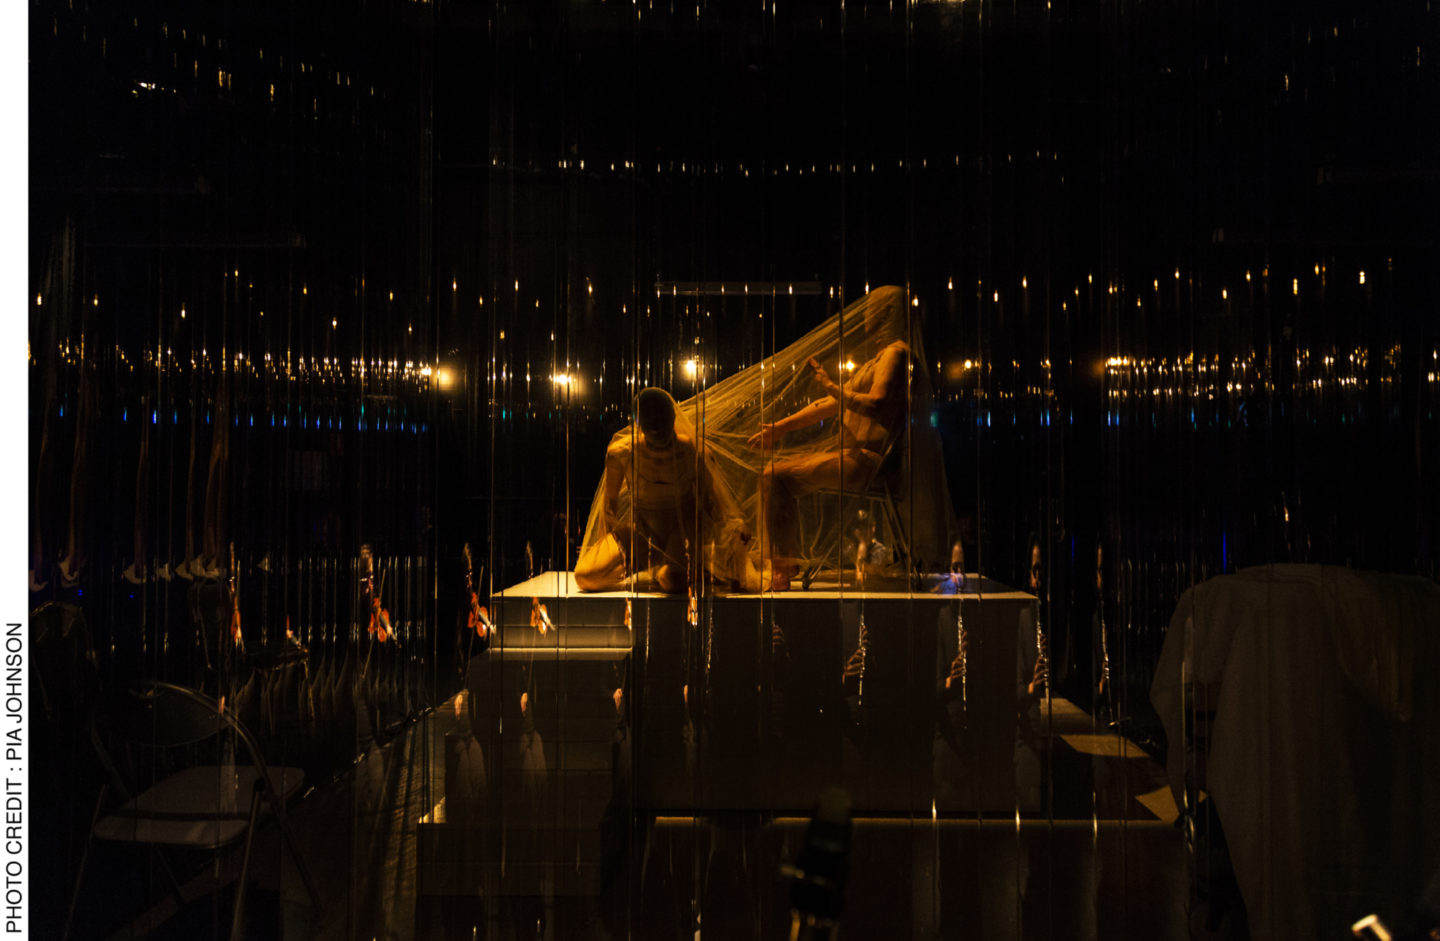 <p>Performers Lauren Langlois and Yoni Prior in the opening Act of <i>Dybbuks </i>are shrouded atop the central raised platform of the stage, moving slowly around each other&#8217;s bodies. The musicians&#8217; reflections can be seen against the perspex curtain. Photo Credit: Pia&nbsp;Johnson.</p>